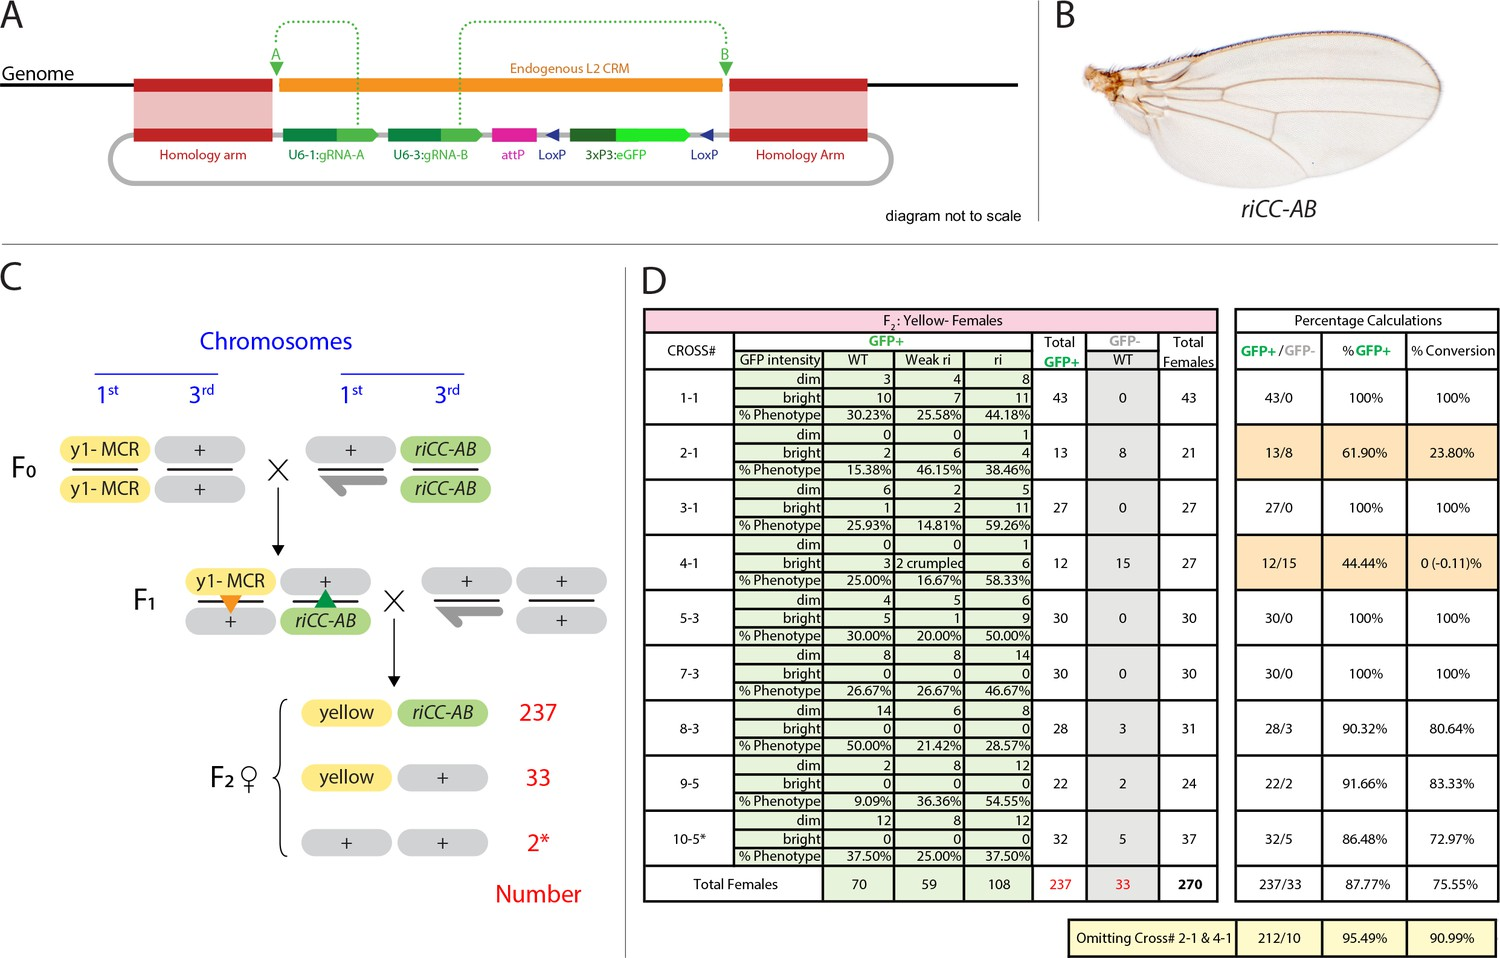 CRISPR/Cas9 and active genetics-based trans-species replacement of